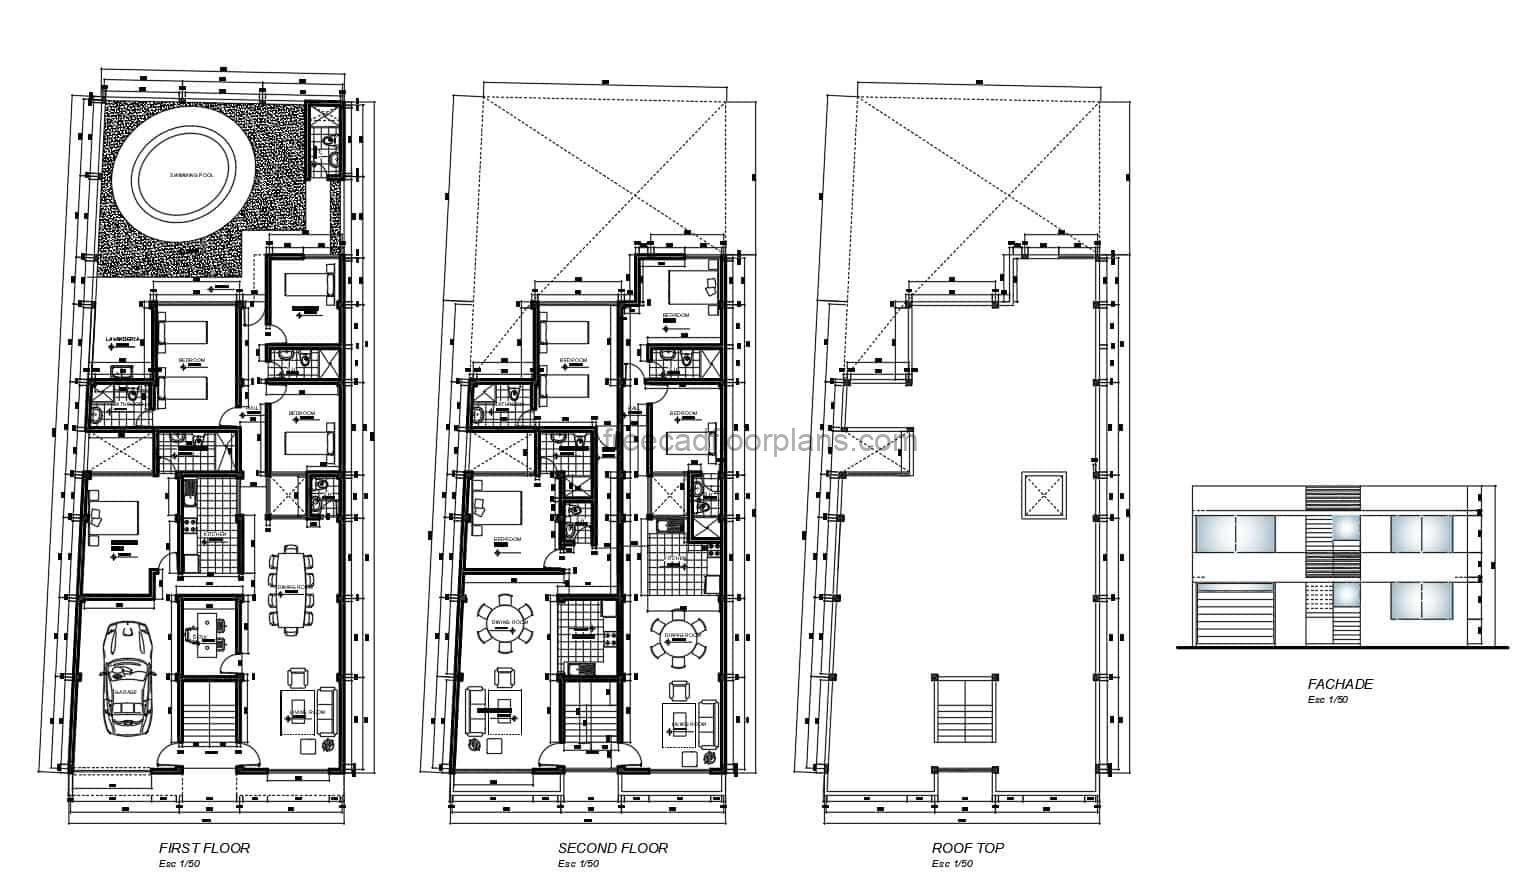 Floor plans with dimensions and details of two-story multi-family house and several 2 and 4 bedroom houses with large yard and pool, floor plan with facade and interior autocad blocks for free download.